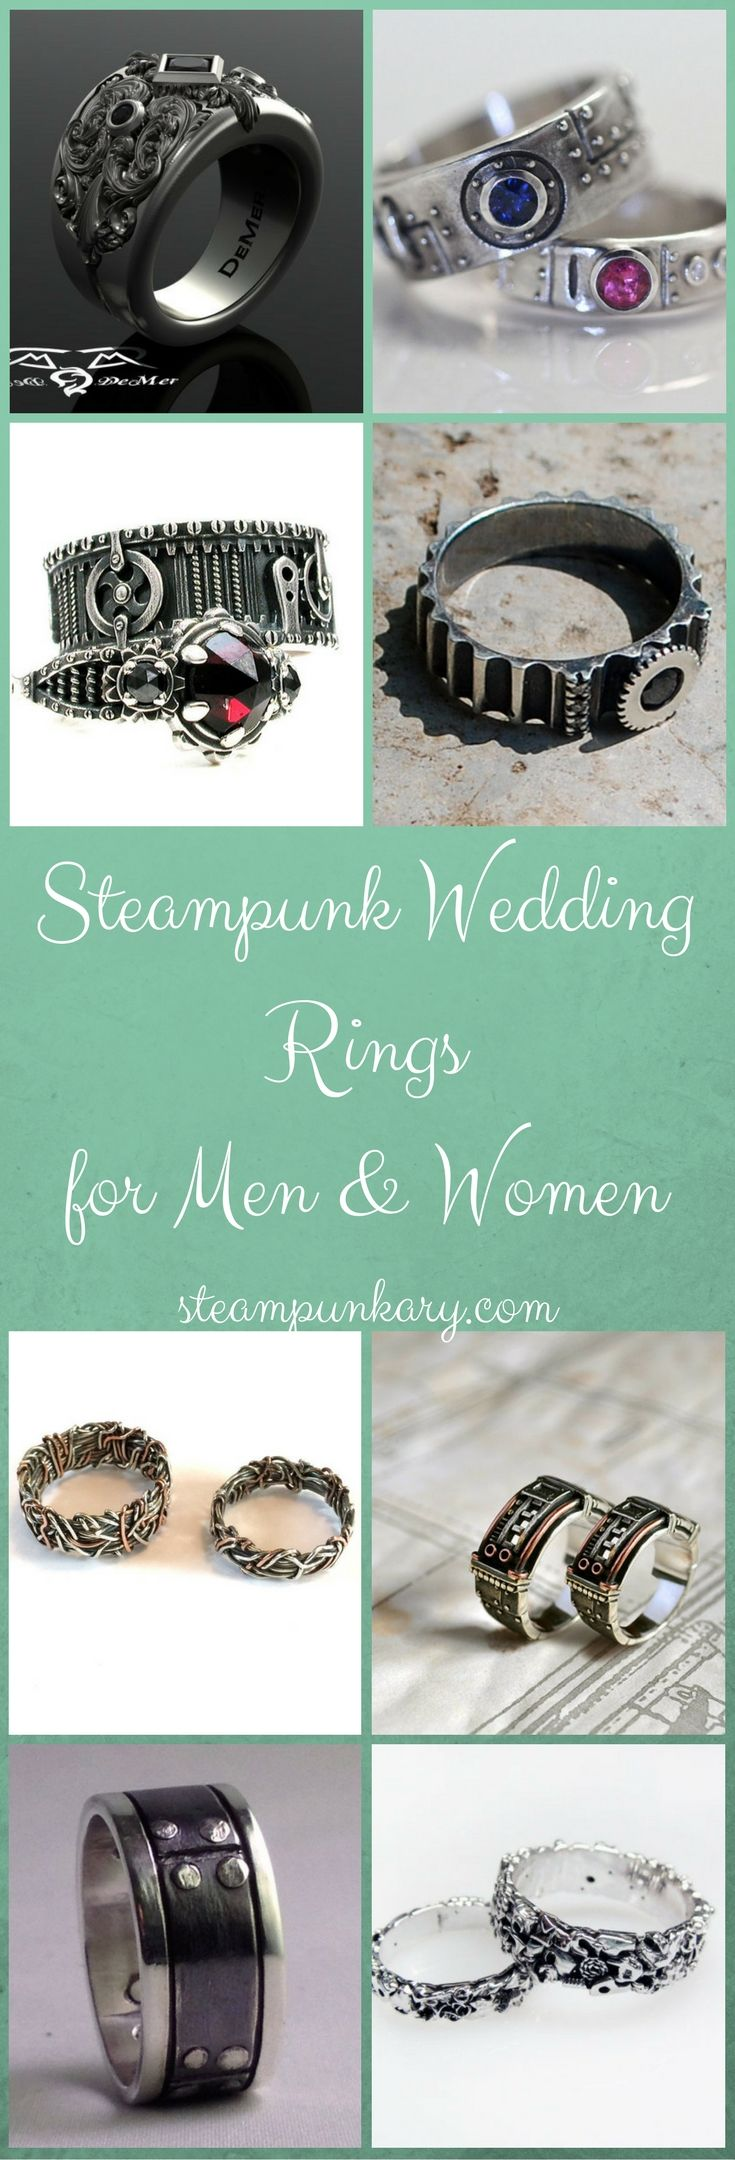 steampunk wedding rings for men and women steampunk wedding ring